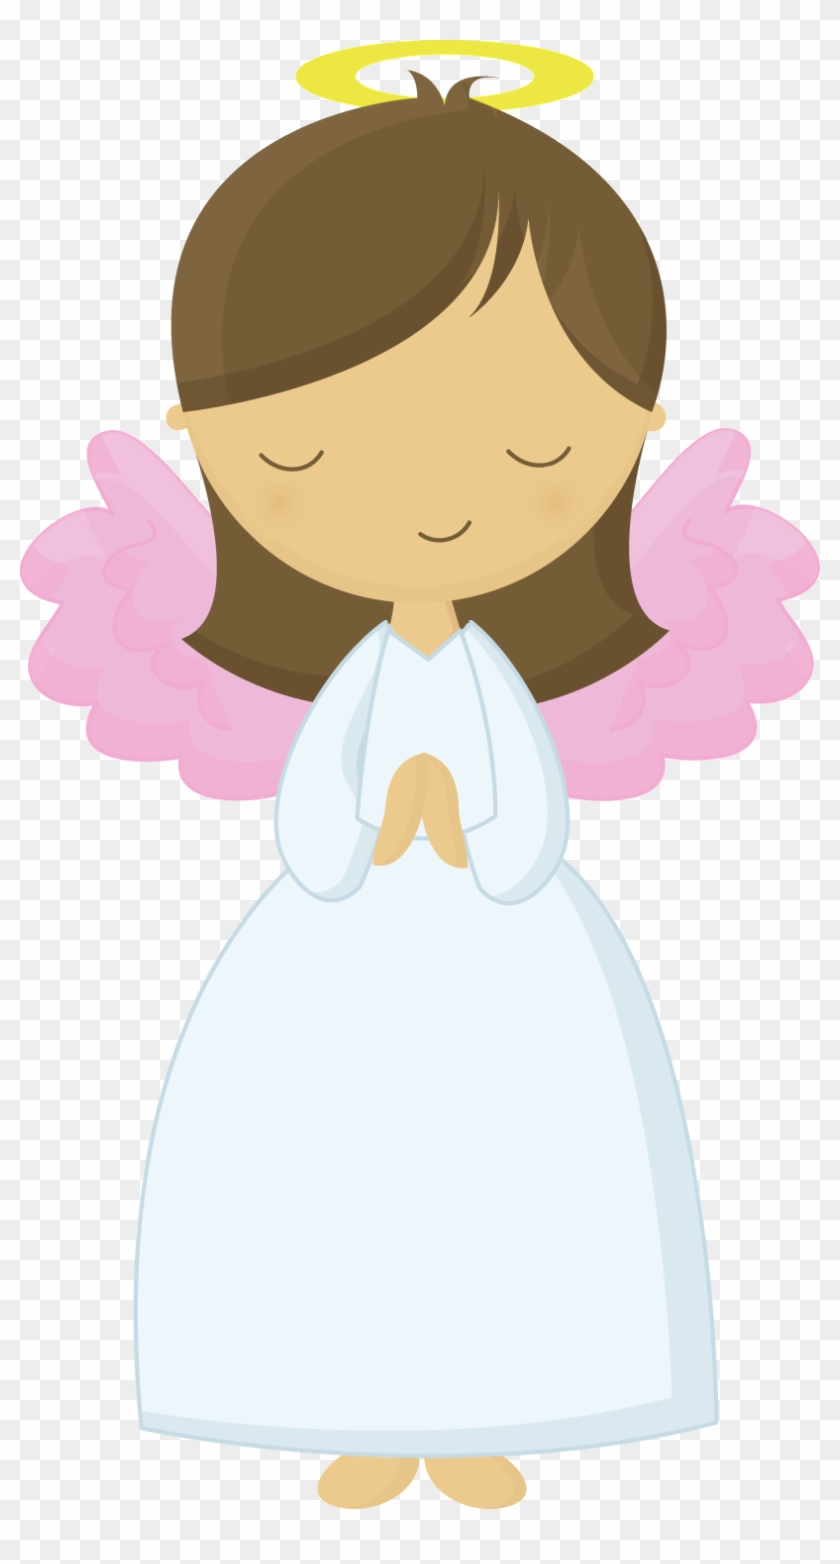 Little Angel Clipart Free Download Clip Art.